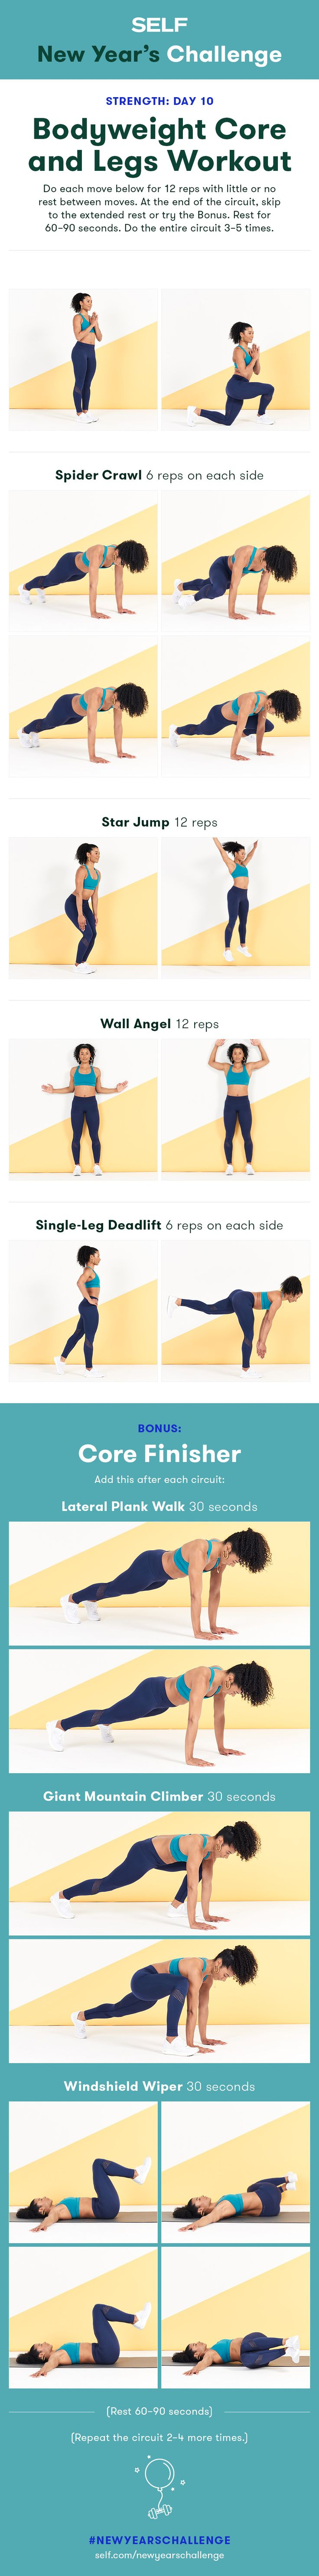 Welcome to our #NewYearsChallenge! Try this no-equipment core and legs workout for women with star jumps and deadlifts to strengthen your abs and glutes!